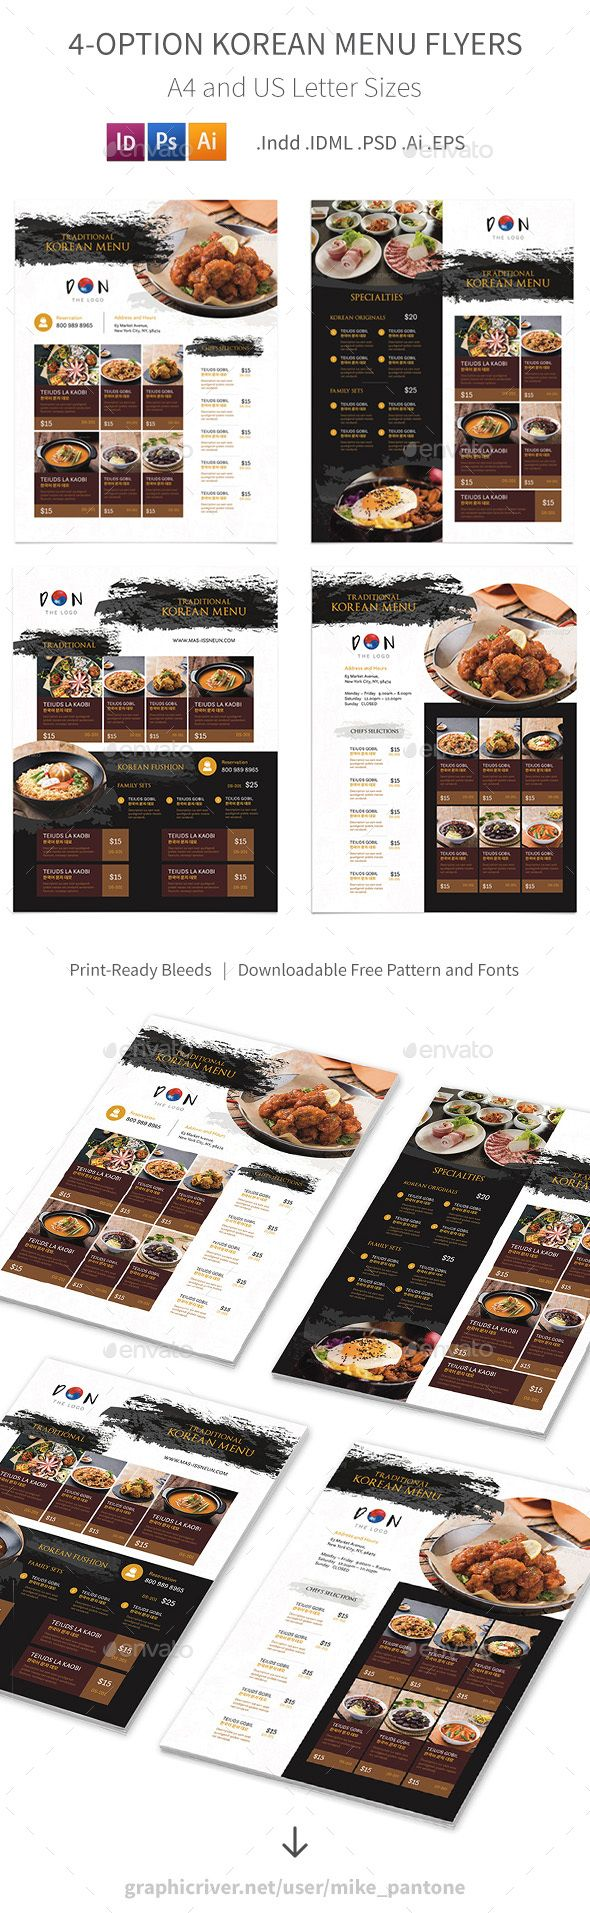 Korean Restaurant Menu Flyers 2 – 4 Options - Food Menus Print Templates Download here : https://graphicriver.net/item/korean-restaurant-menu-flyers-2-4-options/19263399?s_rank=81&ref=Al-fatih